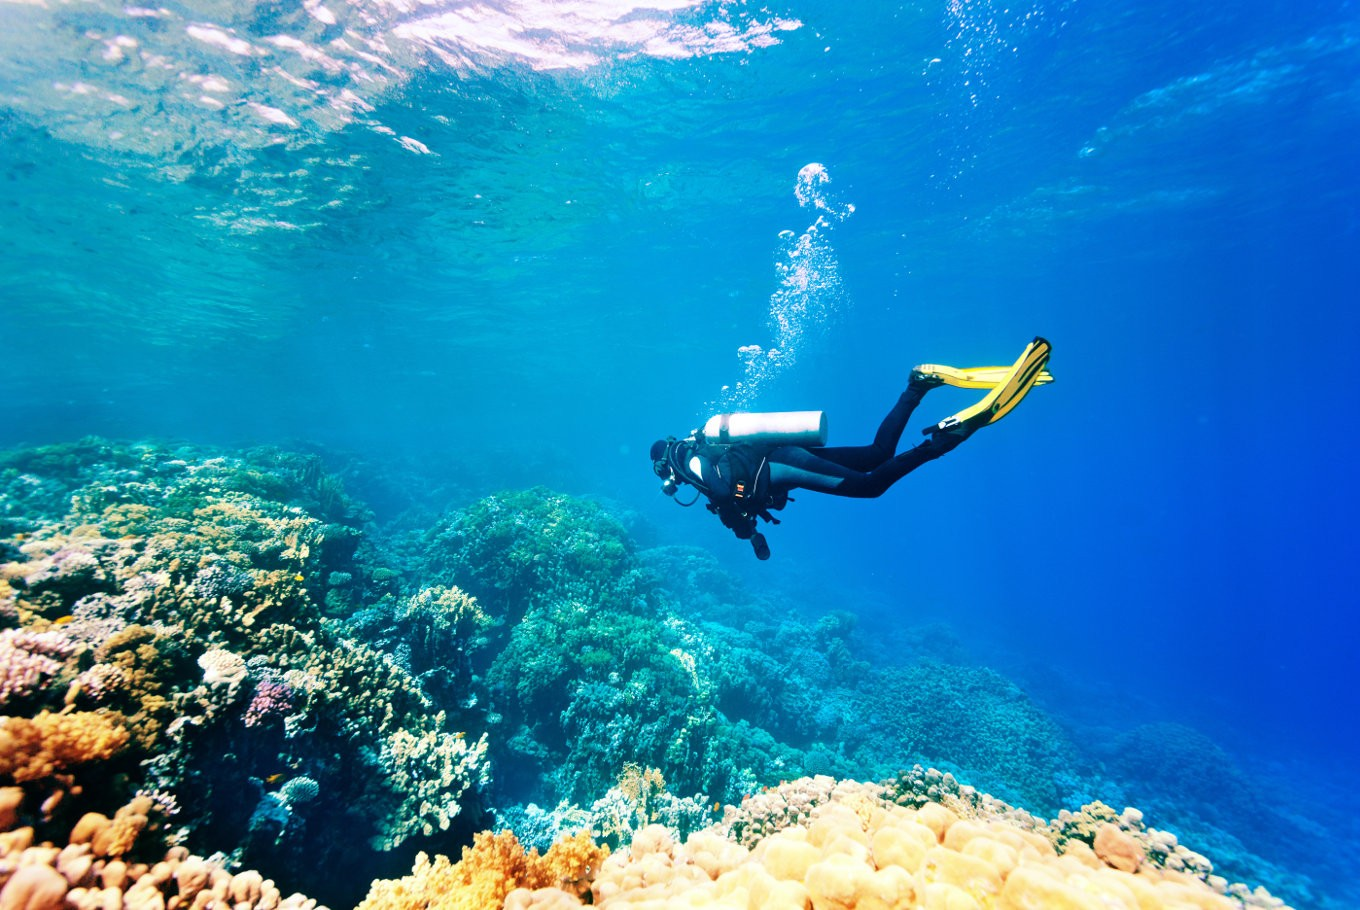 The ultimate experience: Scuba diving in Bali